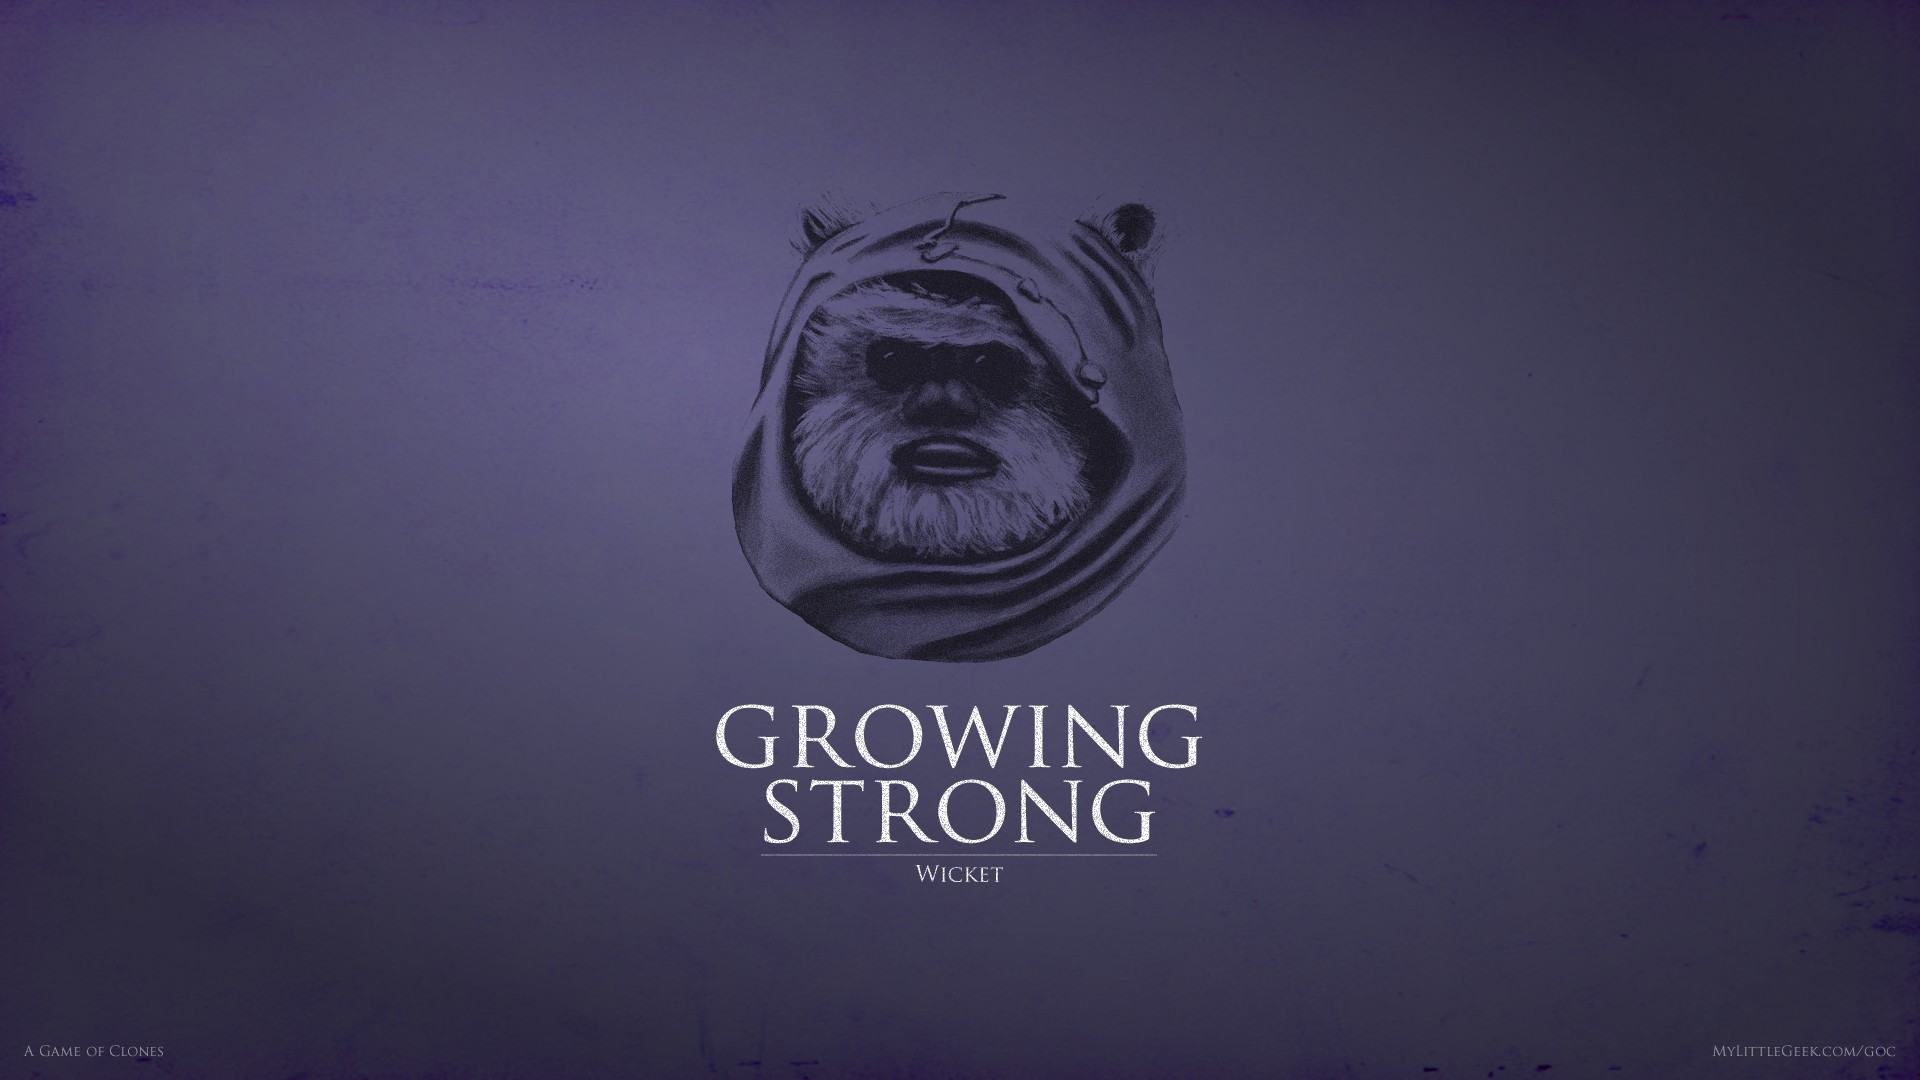 1920x1080 Hear Me Roar Chewbacca Wallpaper. Growing Strong: Wicket the Ewok